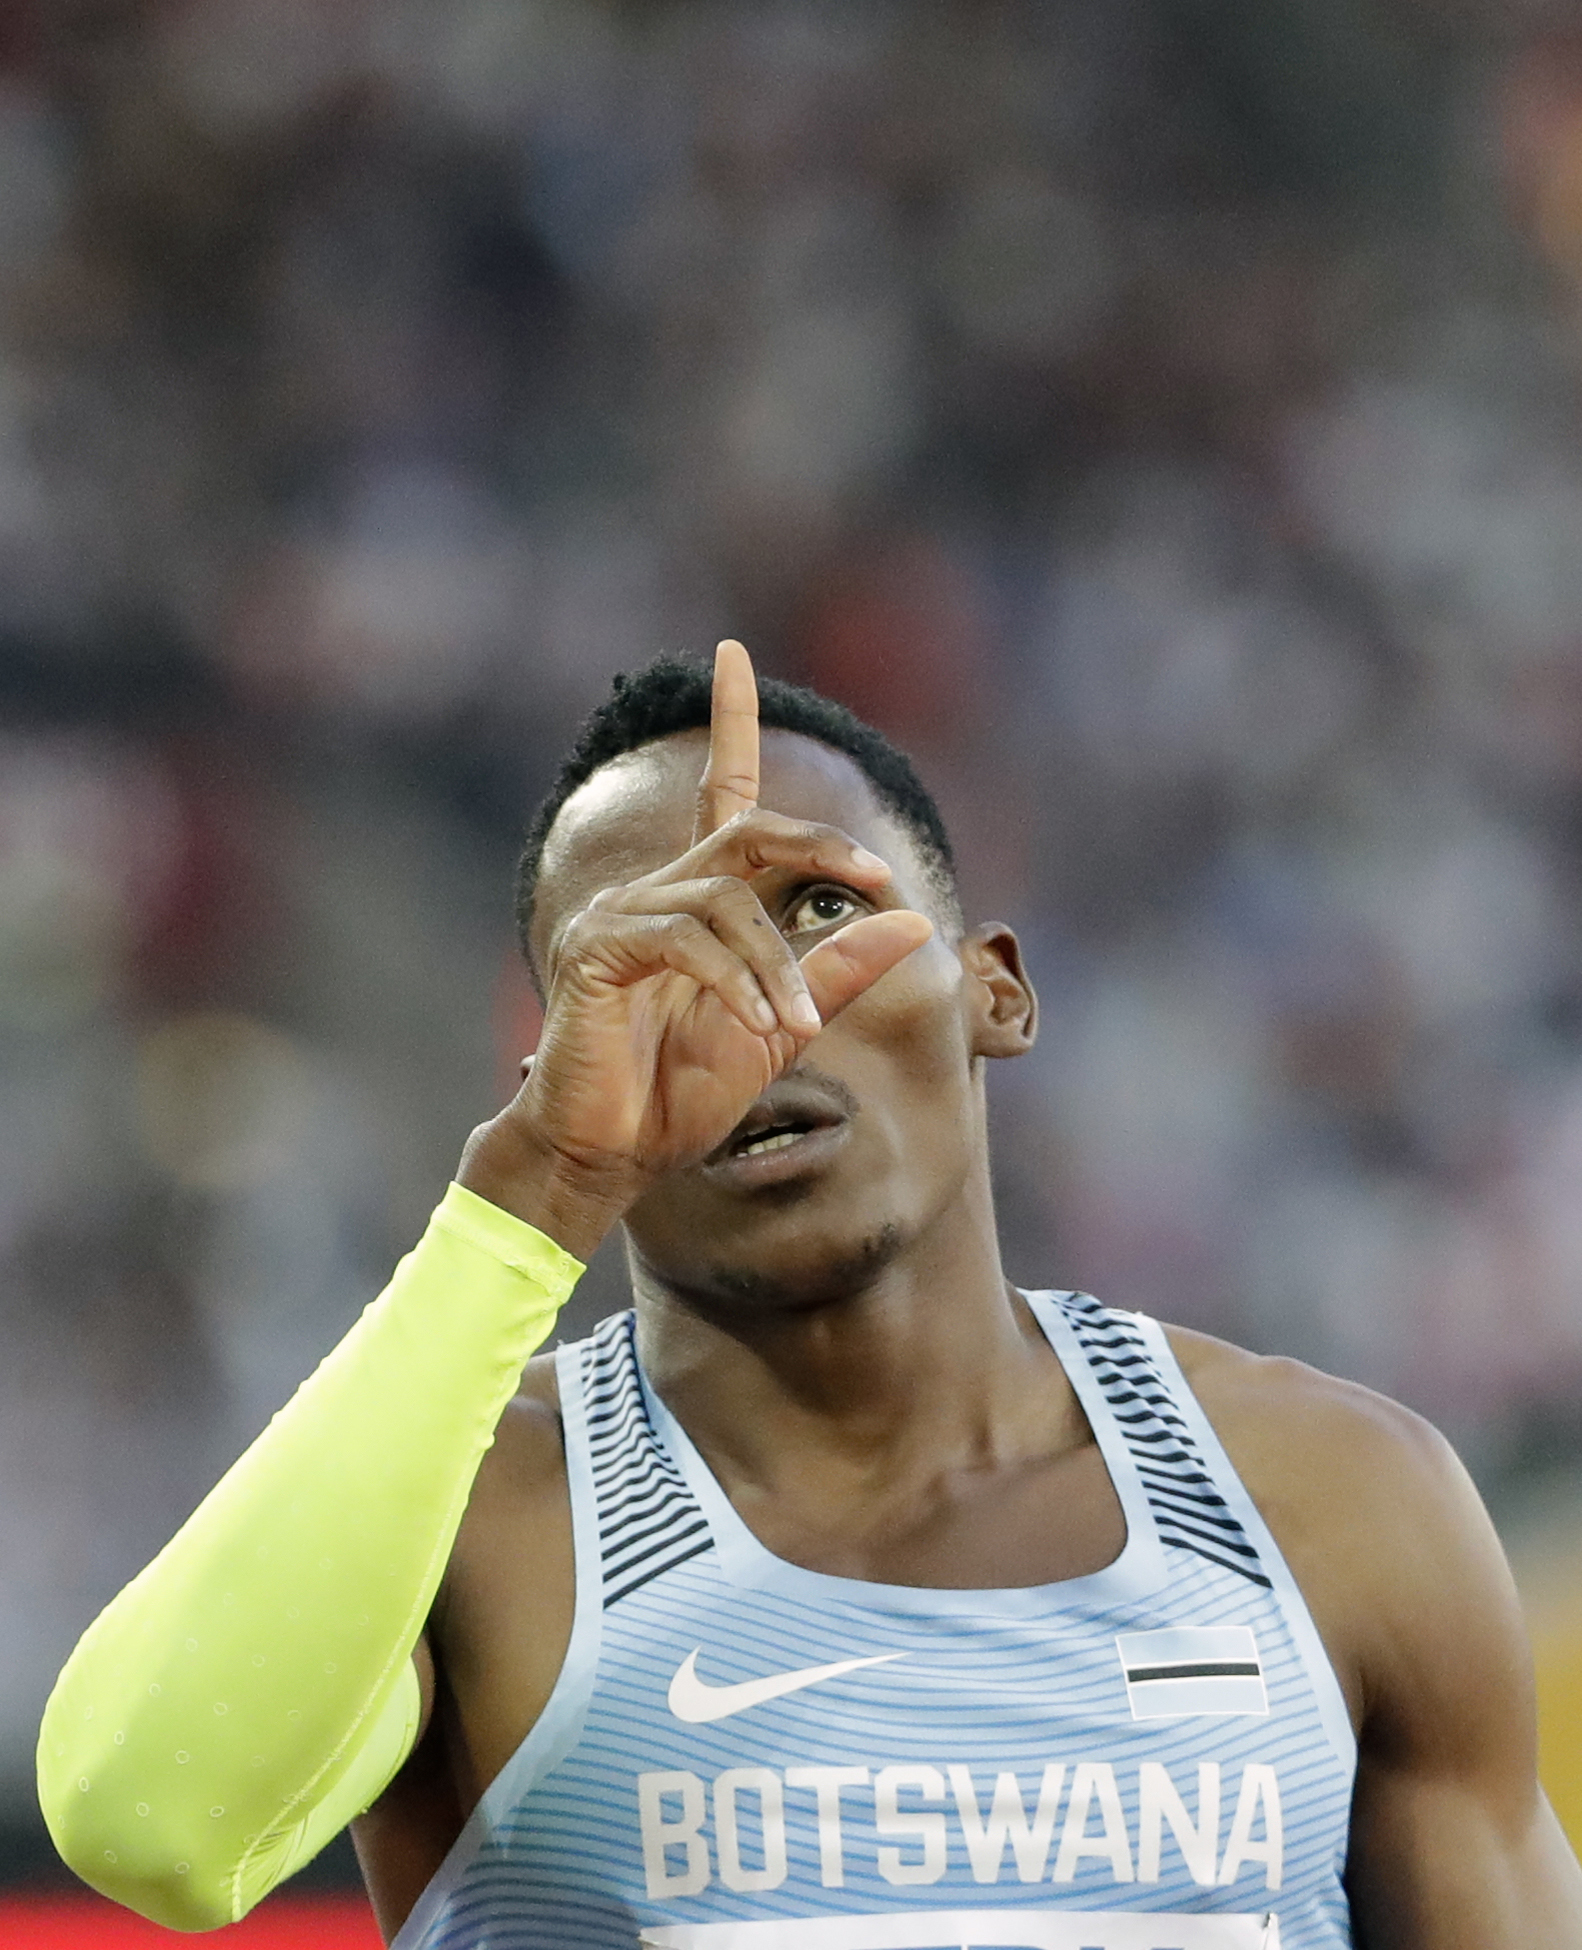 Botswana's Isaac Makwala gestures after winning a Men's 400m semifinal during the World Athletics Championships in London Sunday, Aug. 6, 2017. (AP Photo/David J. Phillip)